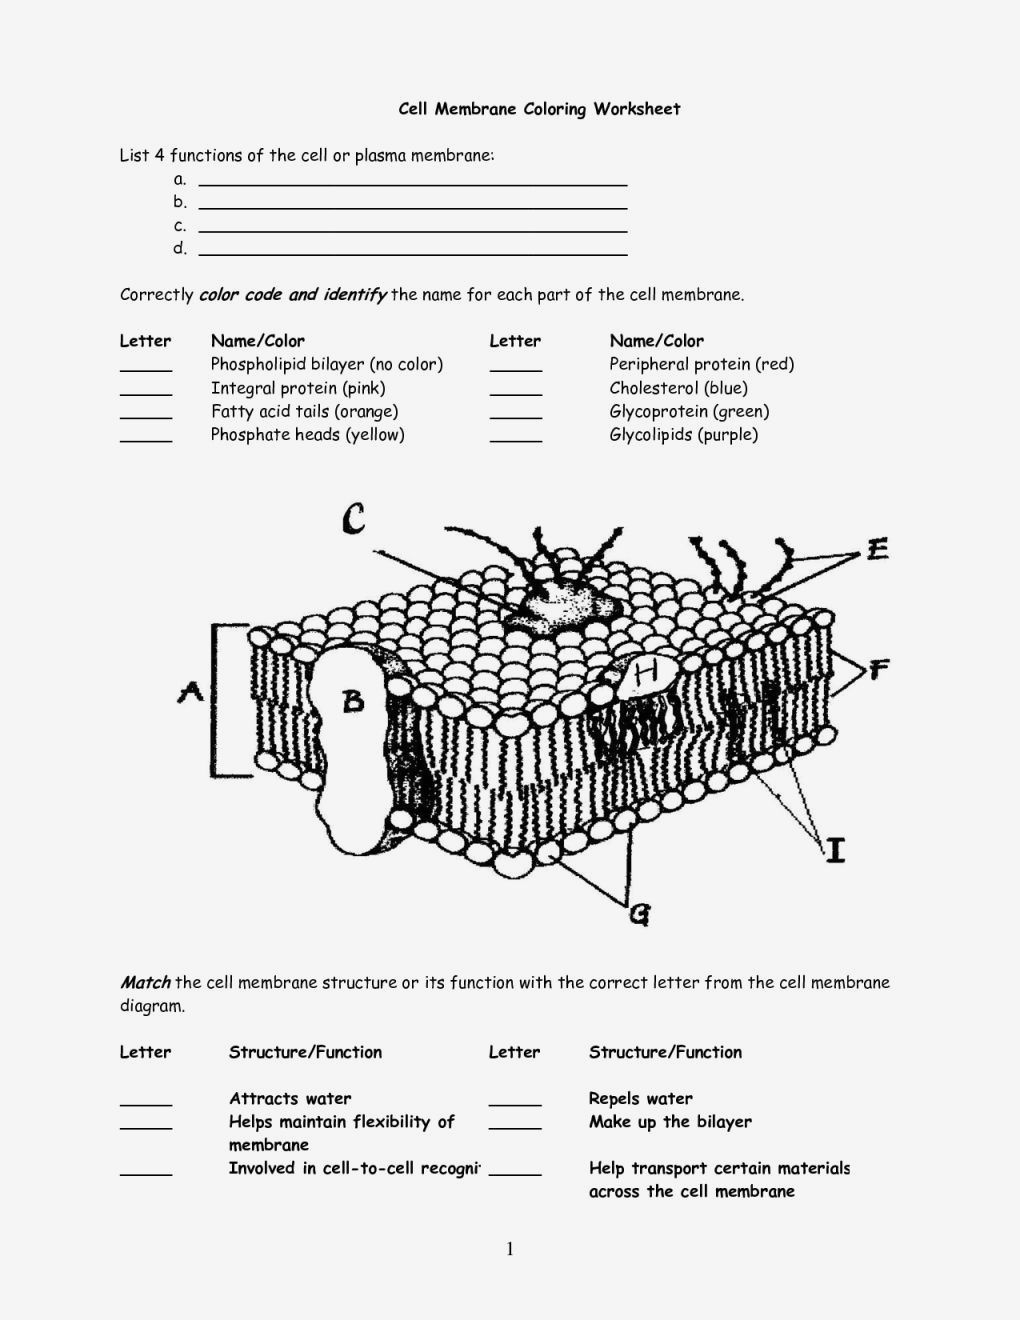 Cell Membrane Coloring Worksheet Answers